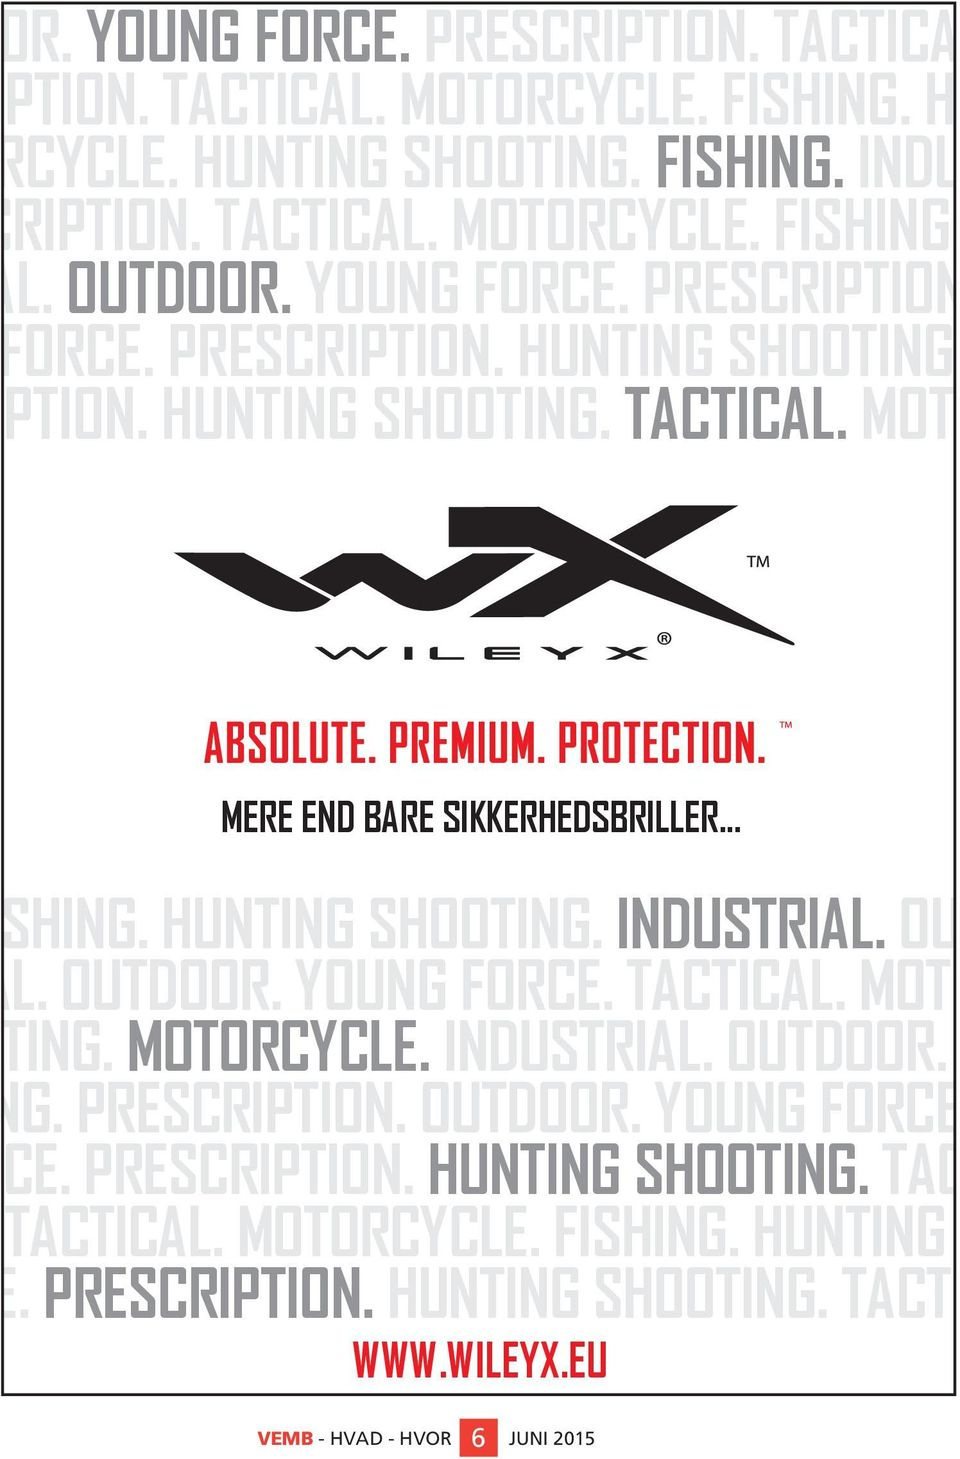 HUNTING SHOOTING. INDUSTRIAL. OUTDO RIAL. OUTDOOR. YOUNG FORCE. TACTICAL. MOTORC OOTING. MOTORCYCLE. INDUSTRIAL. OUTDOOR. YOU OTING. PRESCRIPTION. OUTDOOR. YOUNG FORCE. PR ORCE.